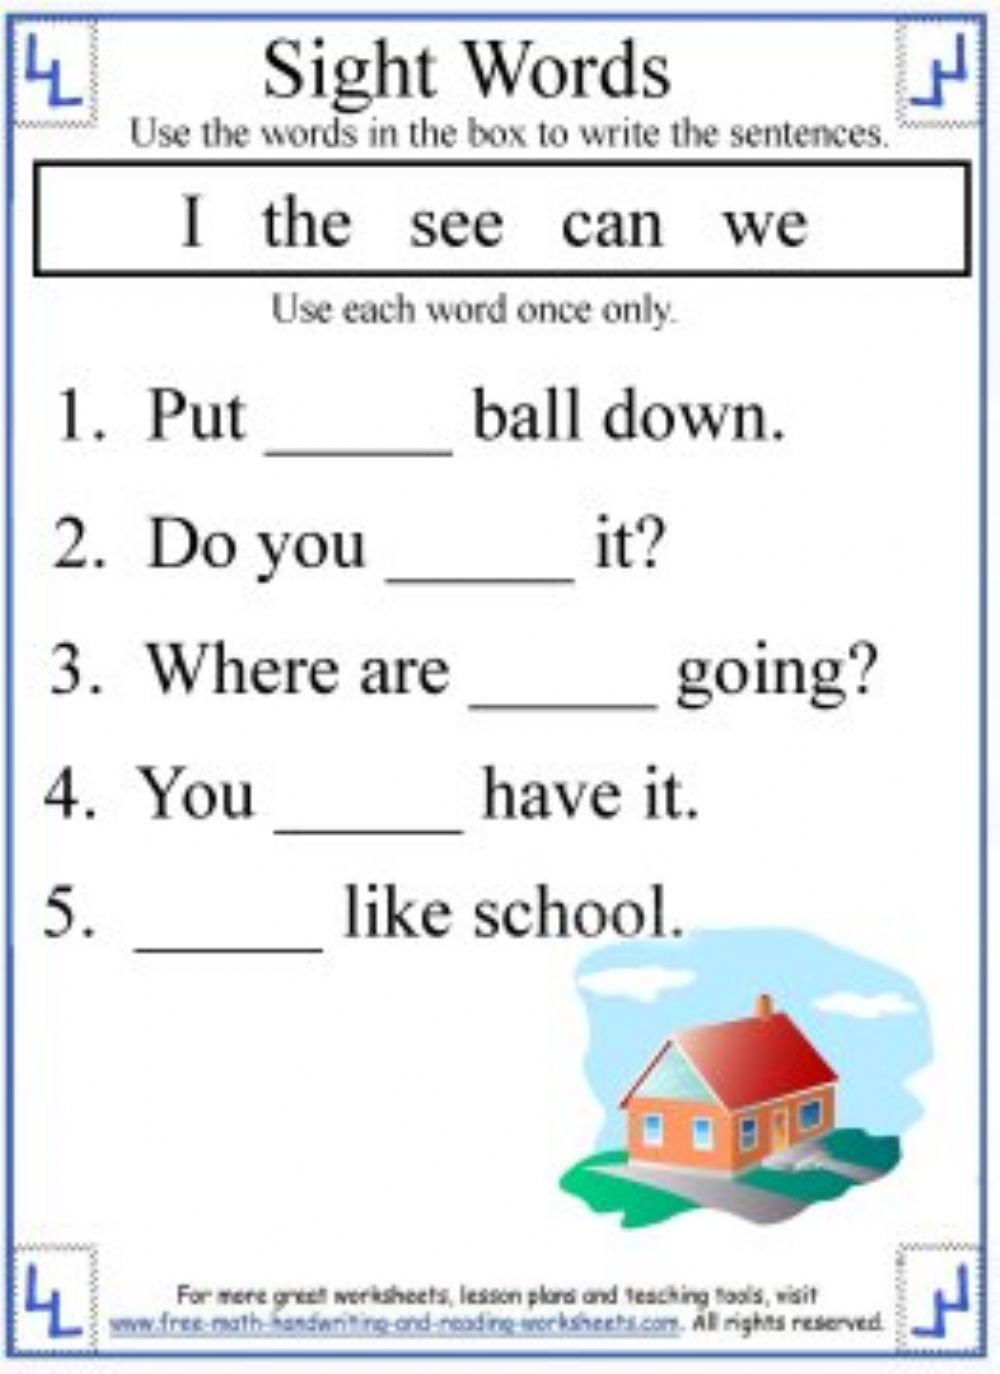 Sight words - Interactive worksheet